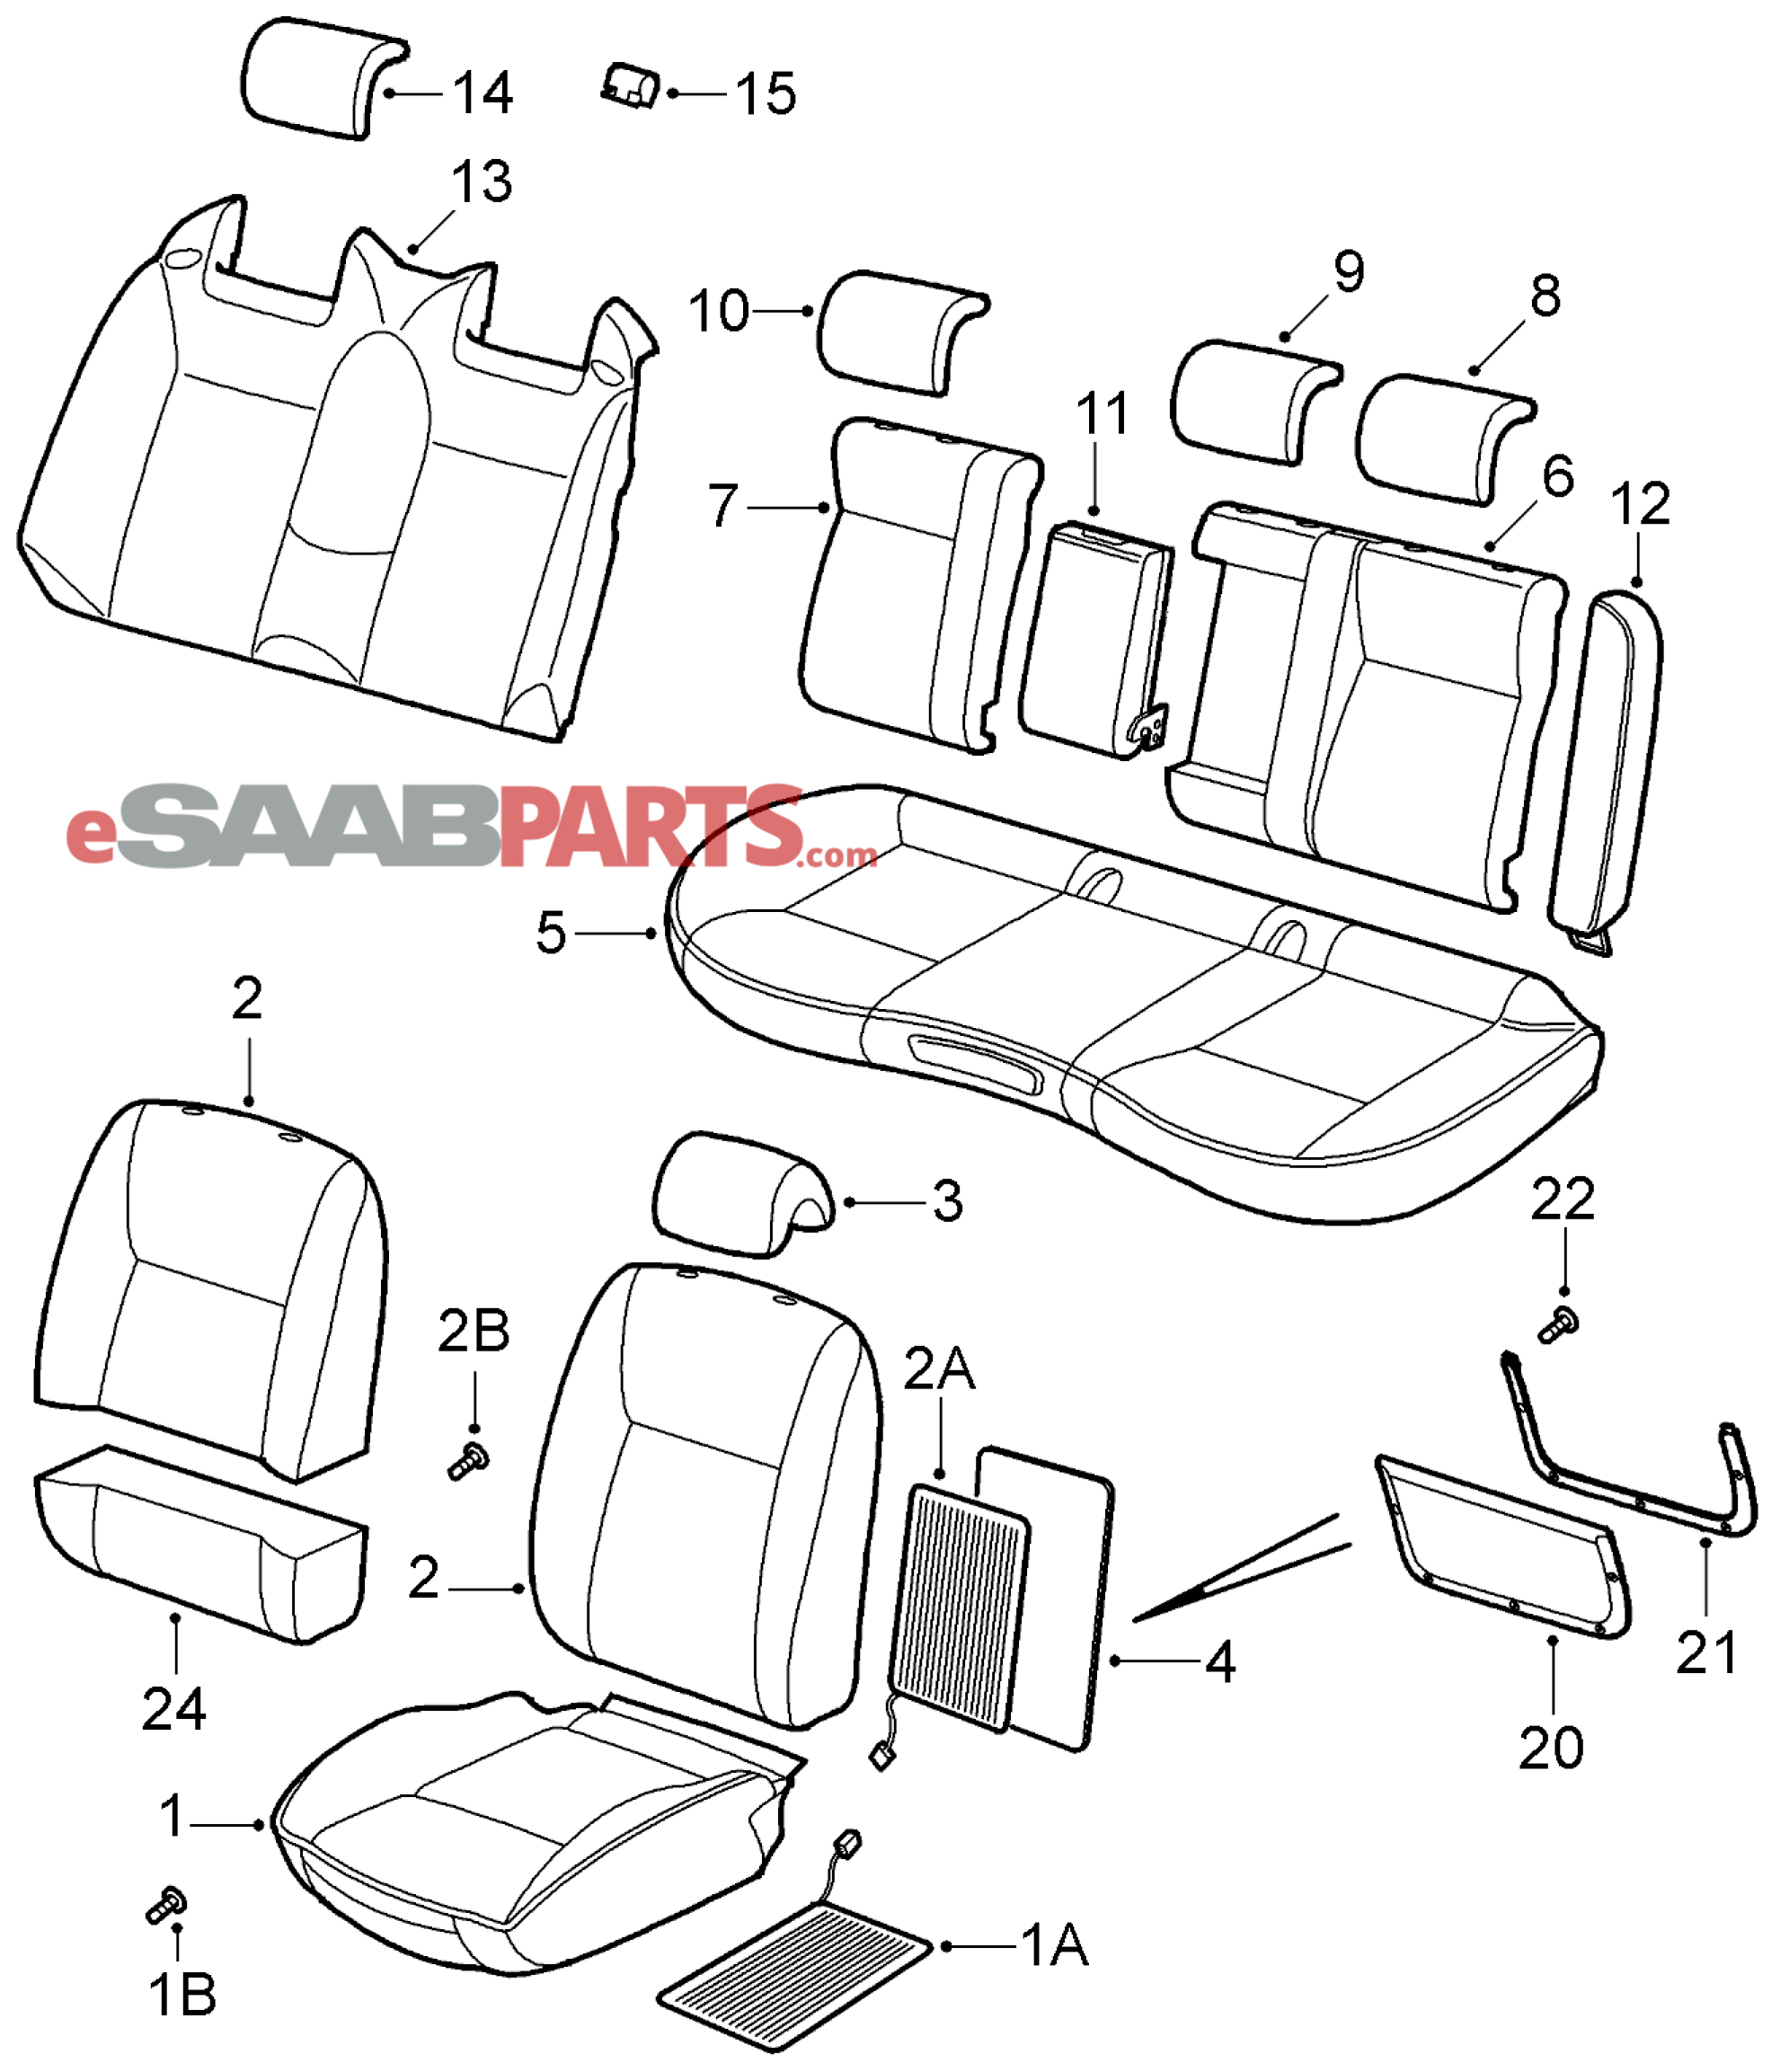 hight resolution of esaabparts com saab 9 3 9440 car body internal parts seat covers seat covers 2008